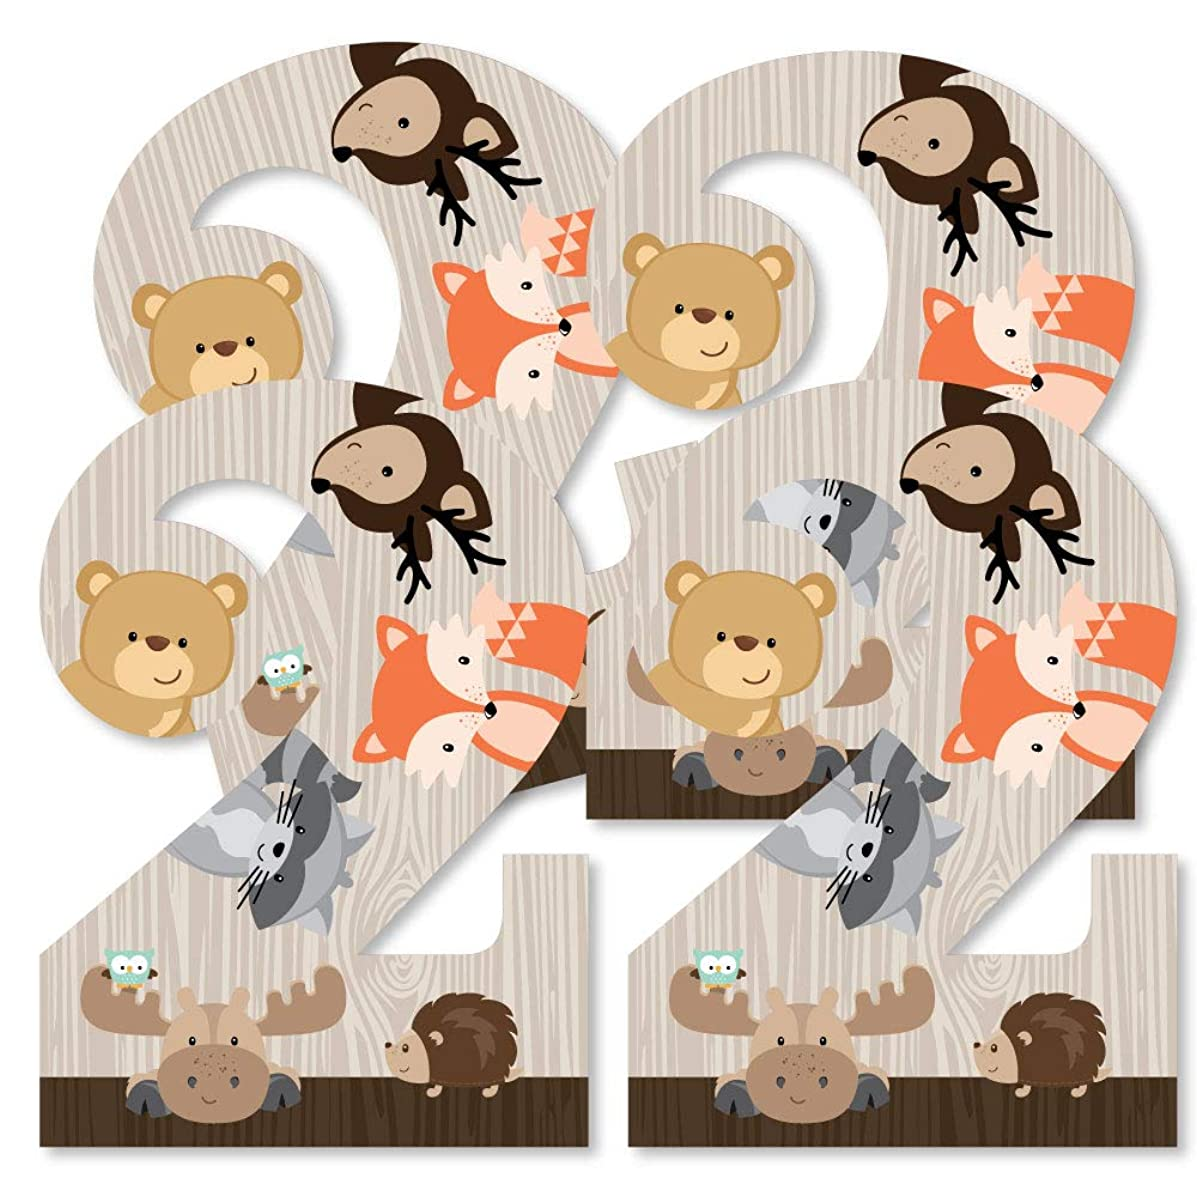 2nd Birthday Woodland Creatures - Two Shaped Decorations DIY Second Birthday Party Essentials - Set of 20